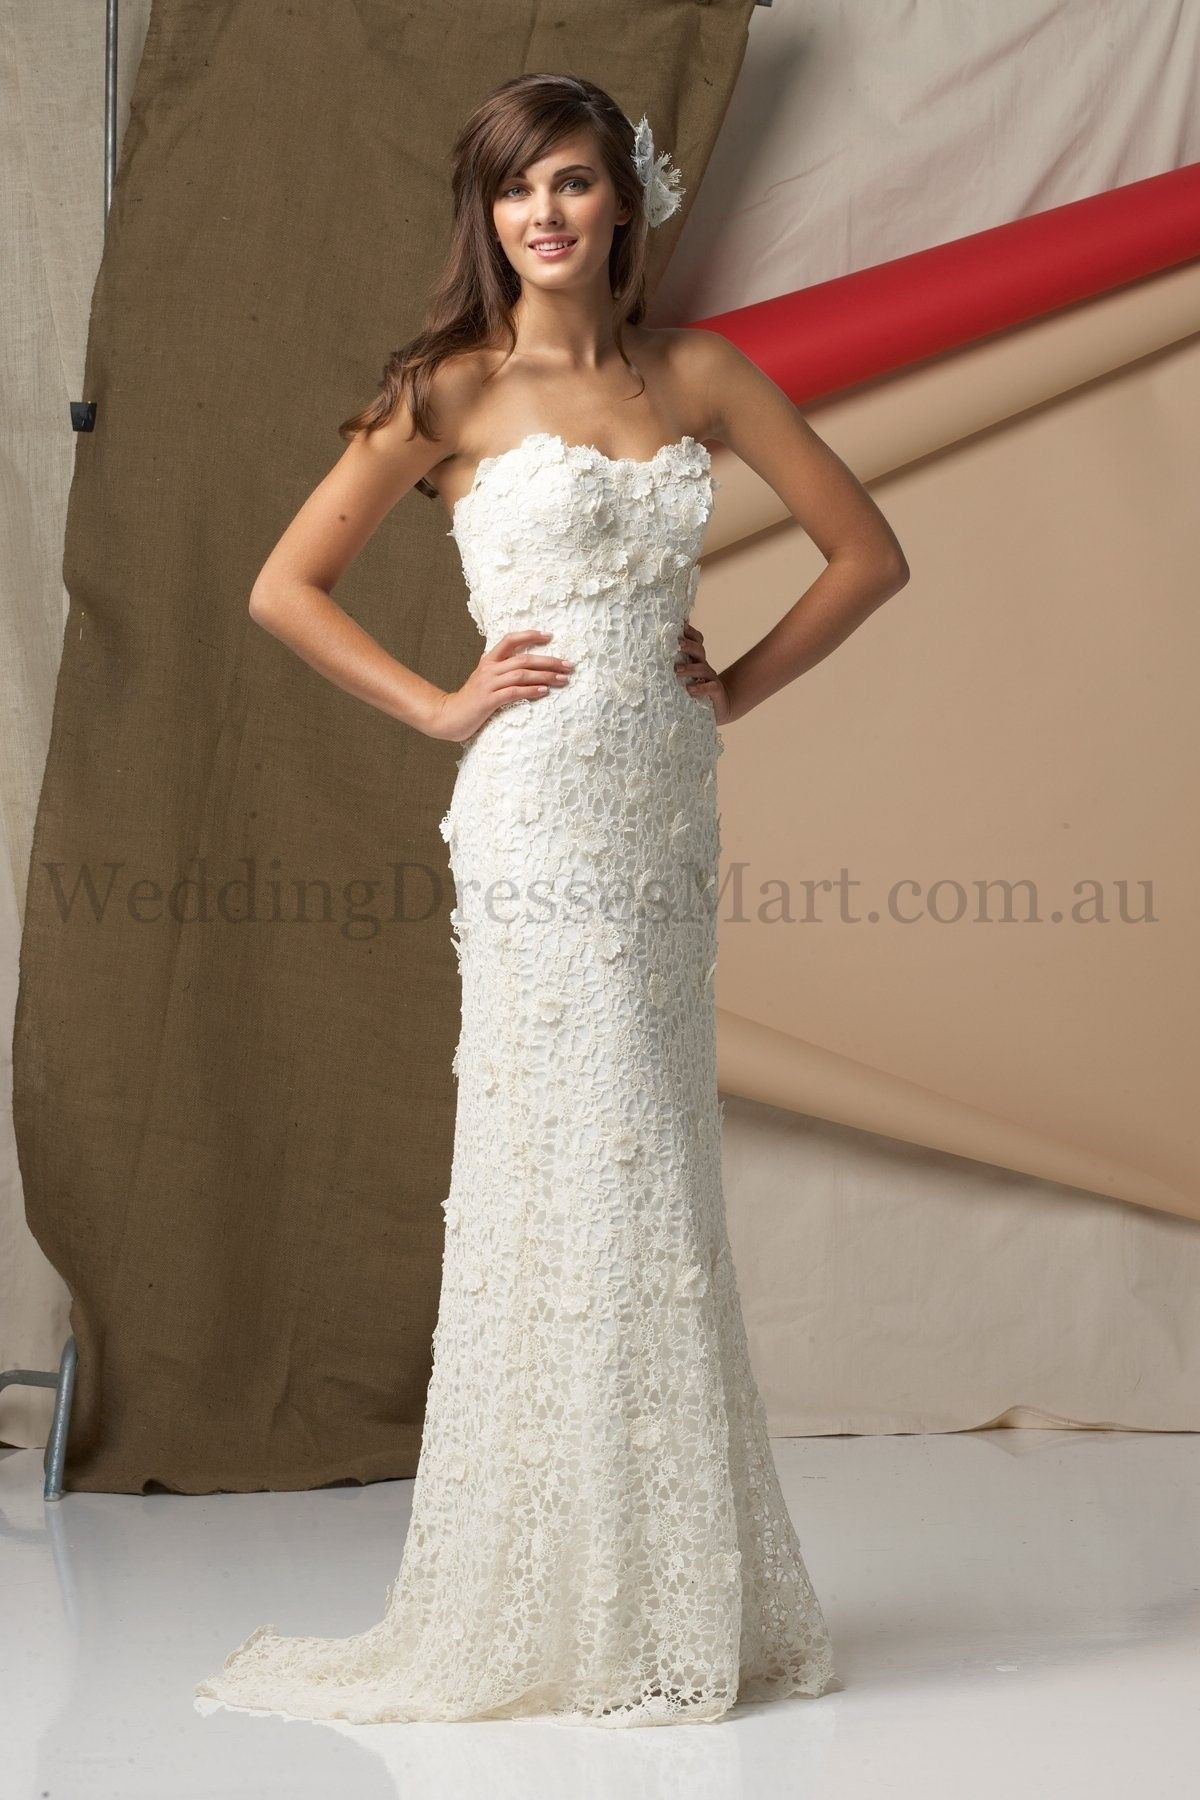 Lovely crochet wedding dress Beautiful Knits & Crochet Pinterest